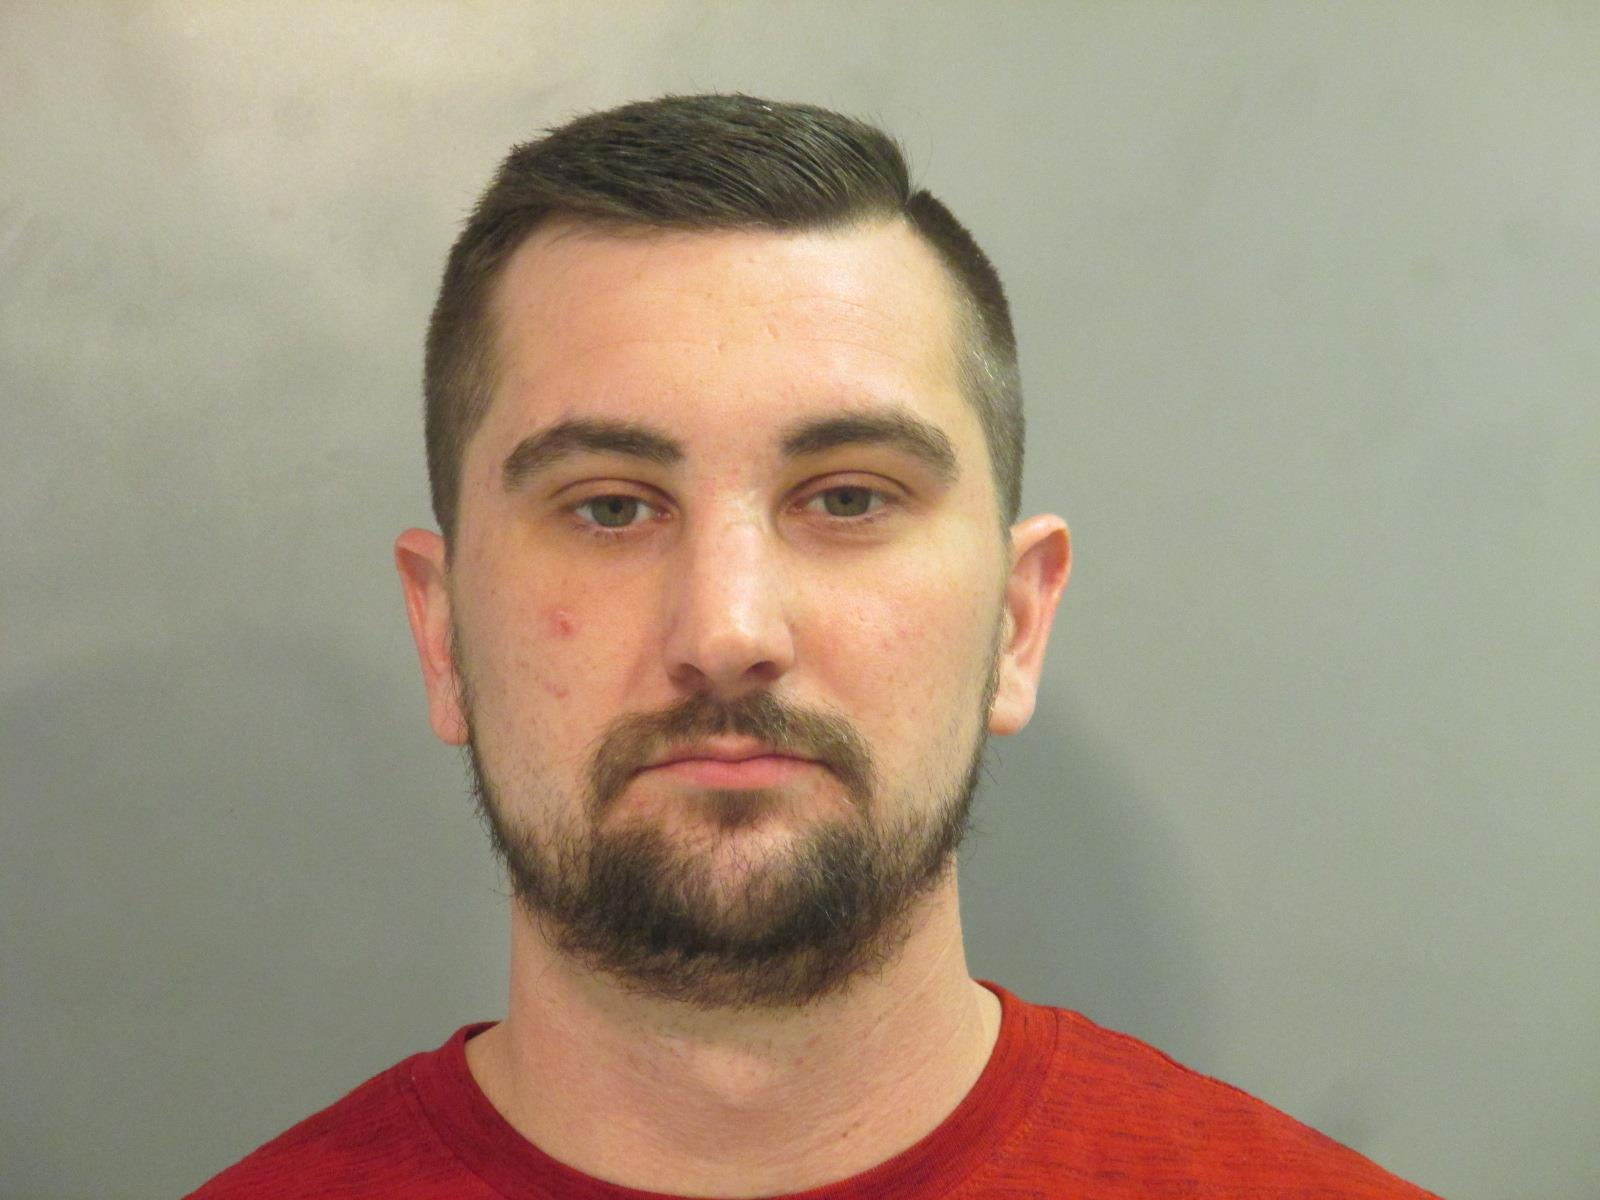 Man Who Posed As SWEPCO Employee In Mall Robbery Gets Probation